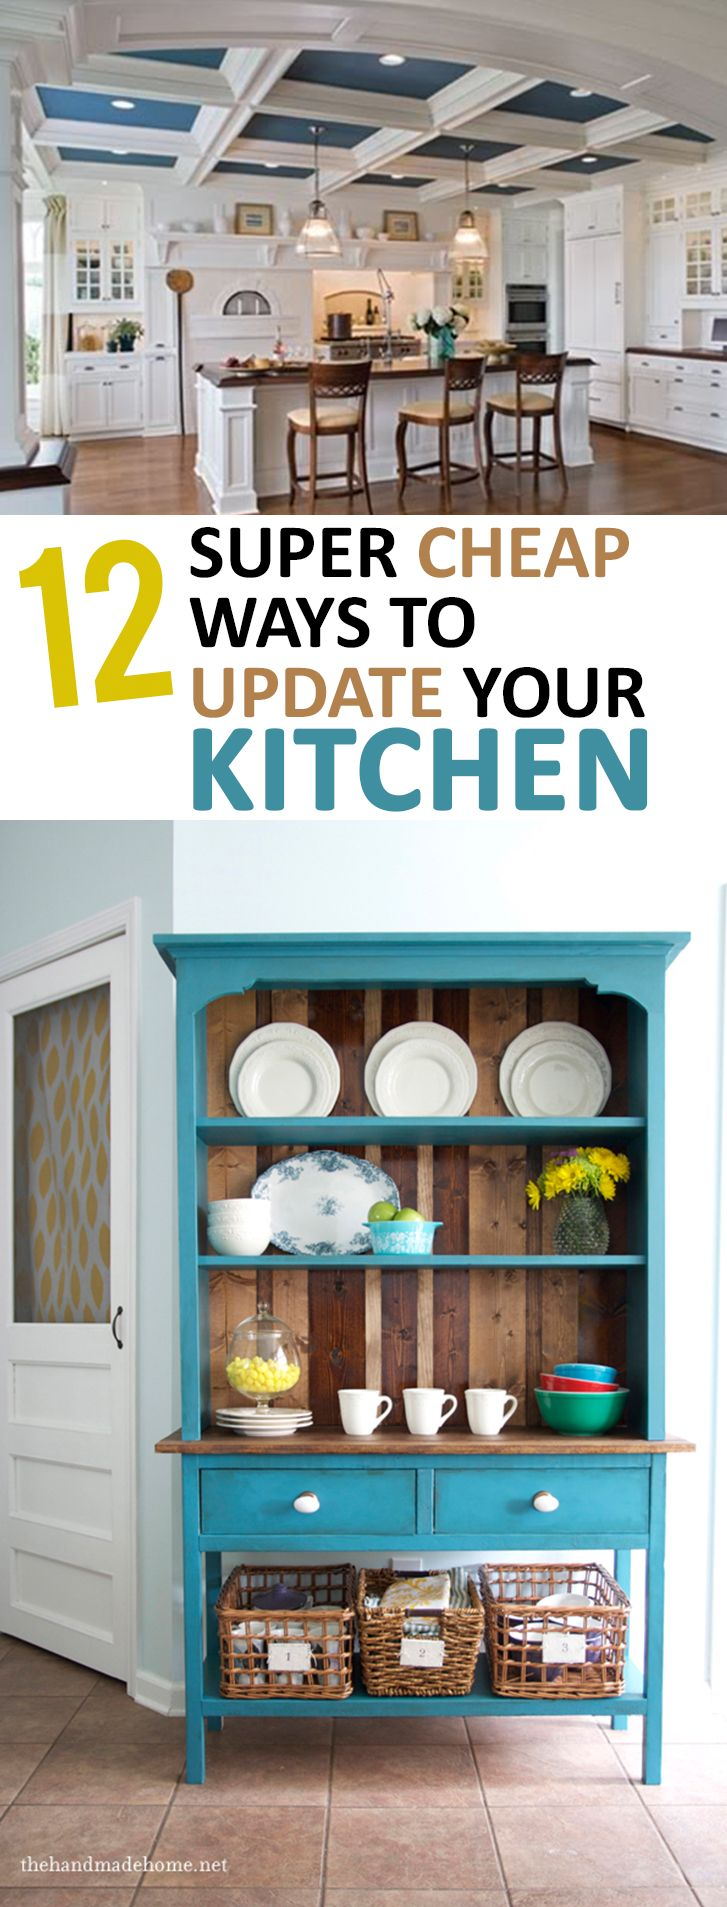 Small Kitchen Remodel Ideas On A Budget 25+ best cheap kitchen remodel ideas on pinterest | cheap kitchen